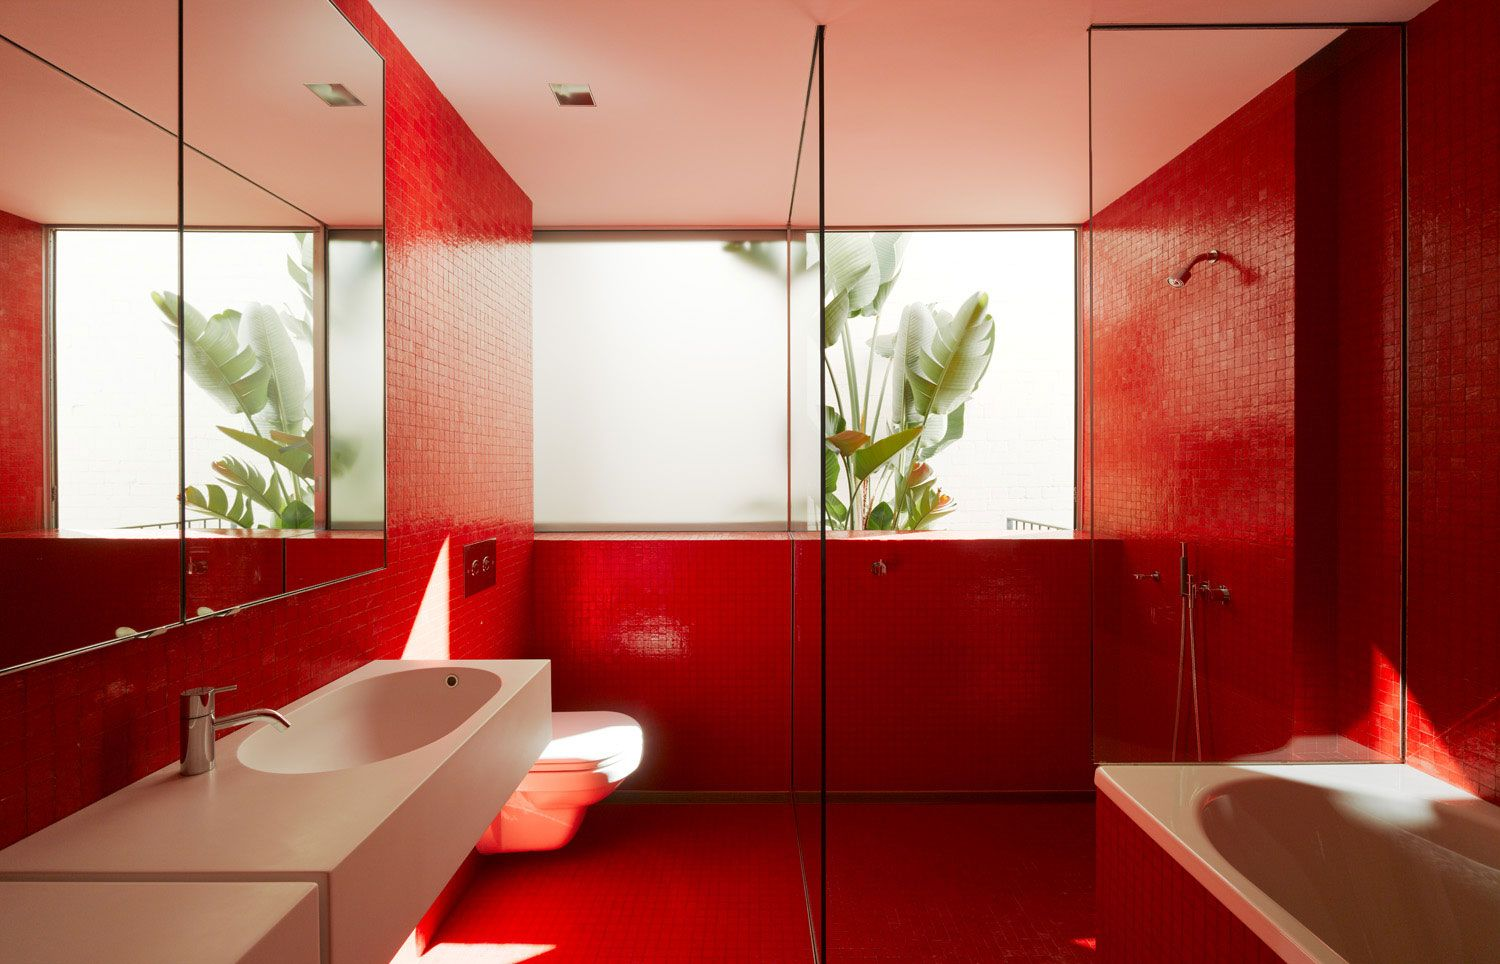 images about bathroom red burgundy on pinterest bathrooms red foams and bathroom red  basement bathroom wall idea. Bathtub Wall Ideas  Pros And Cons Of Having A Walkin Shower